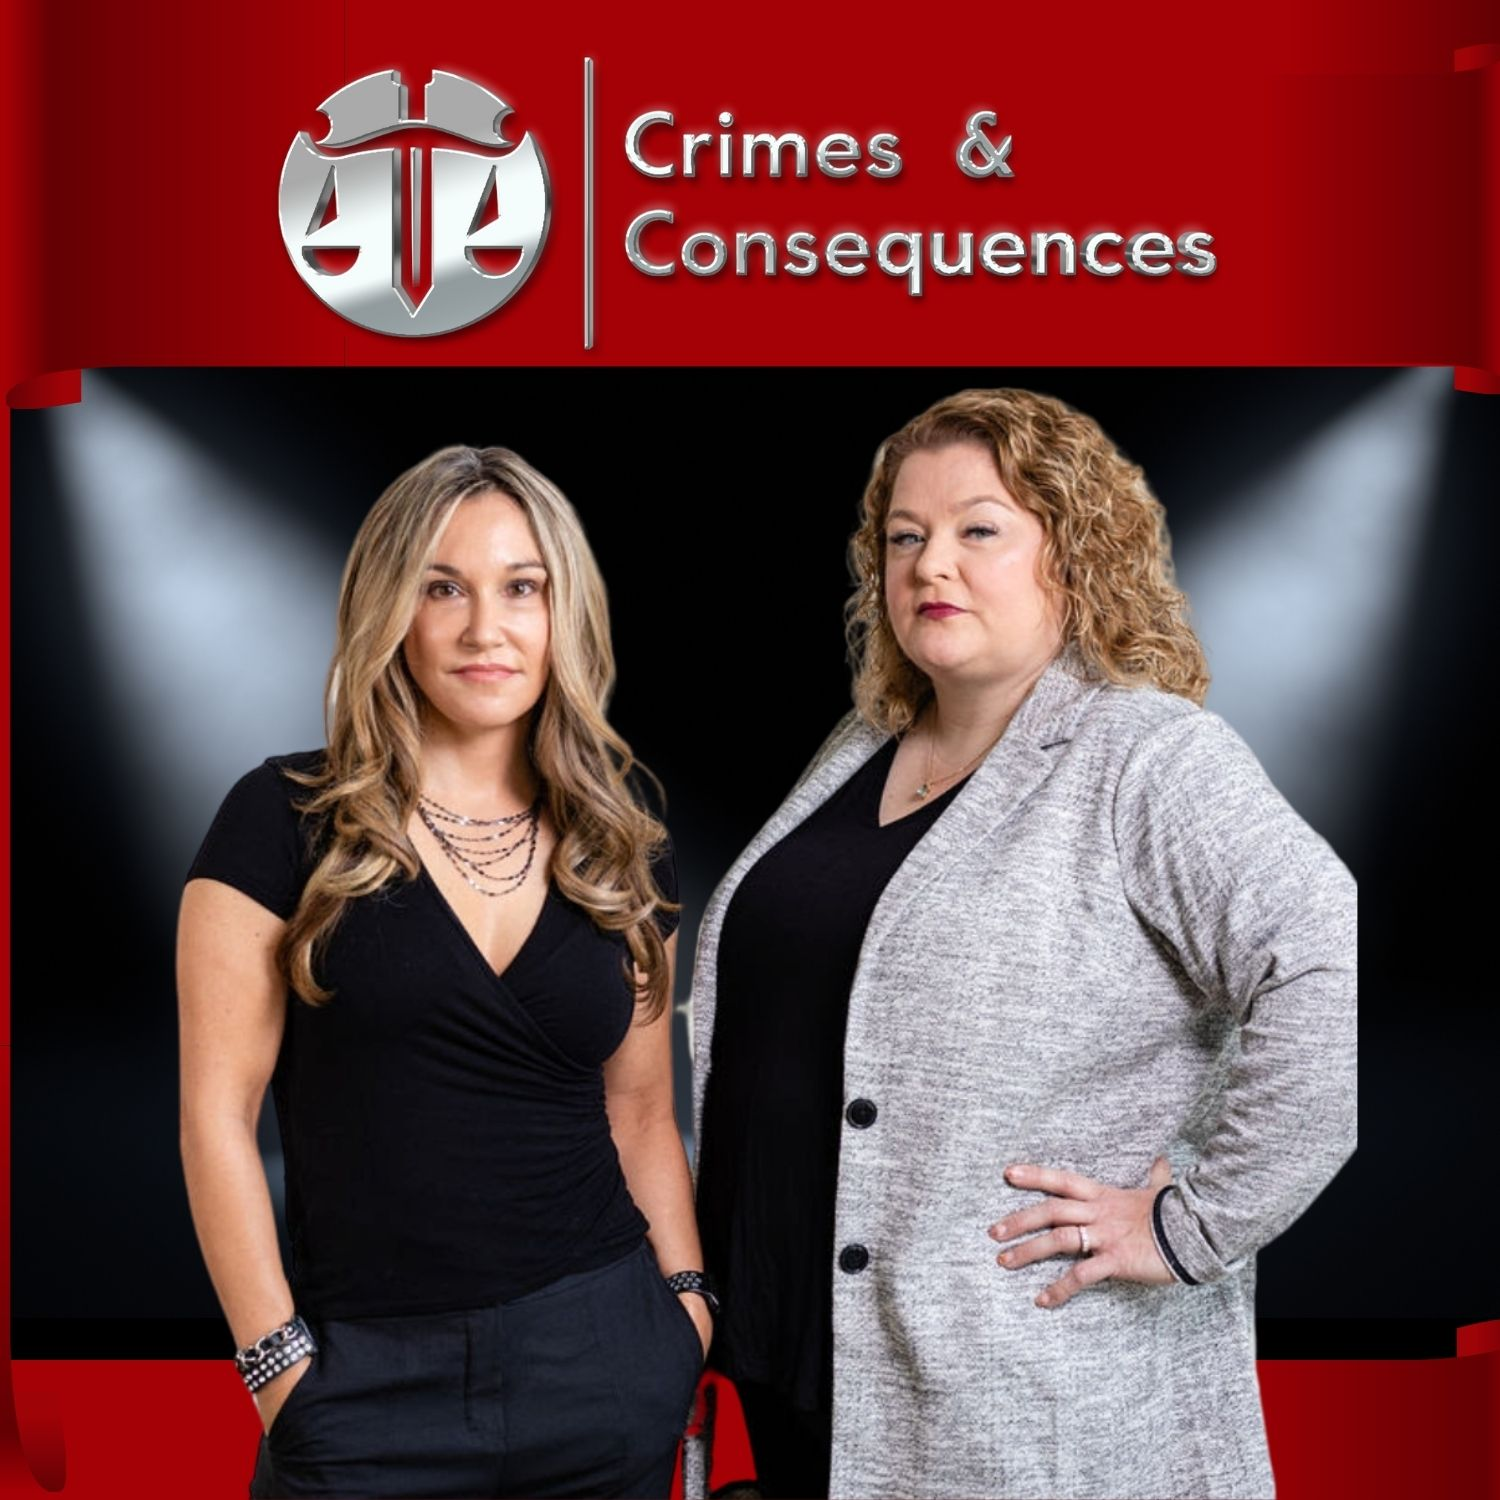 Crimes and consequences podcast